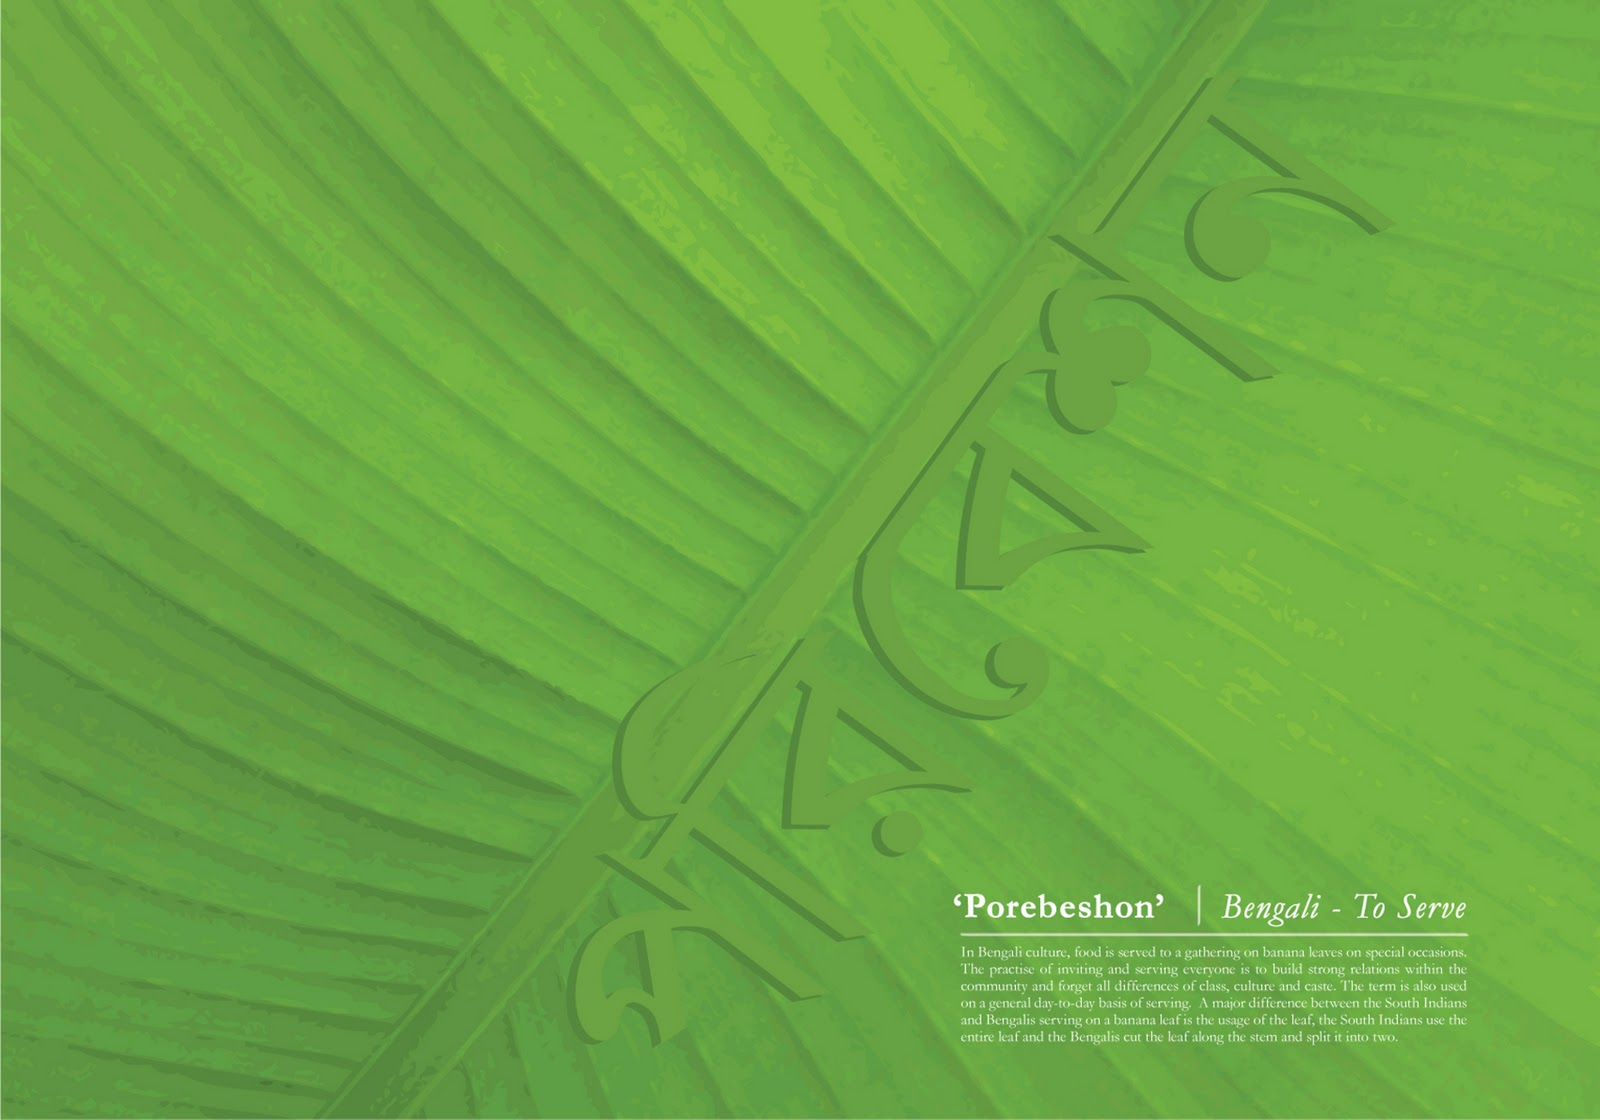 Ulti Chappal: Typography Day 2012 Poster Entries